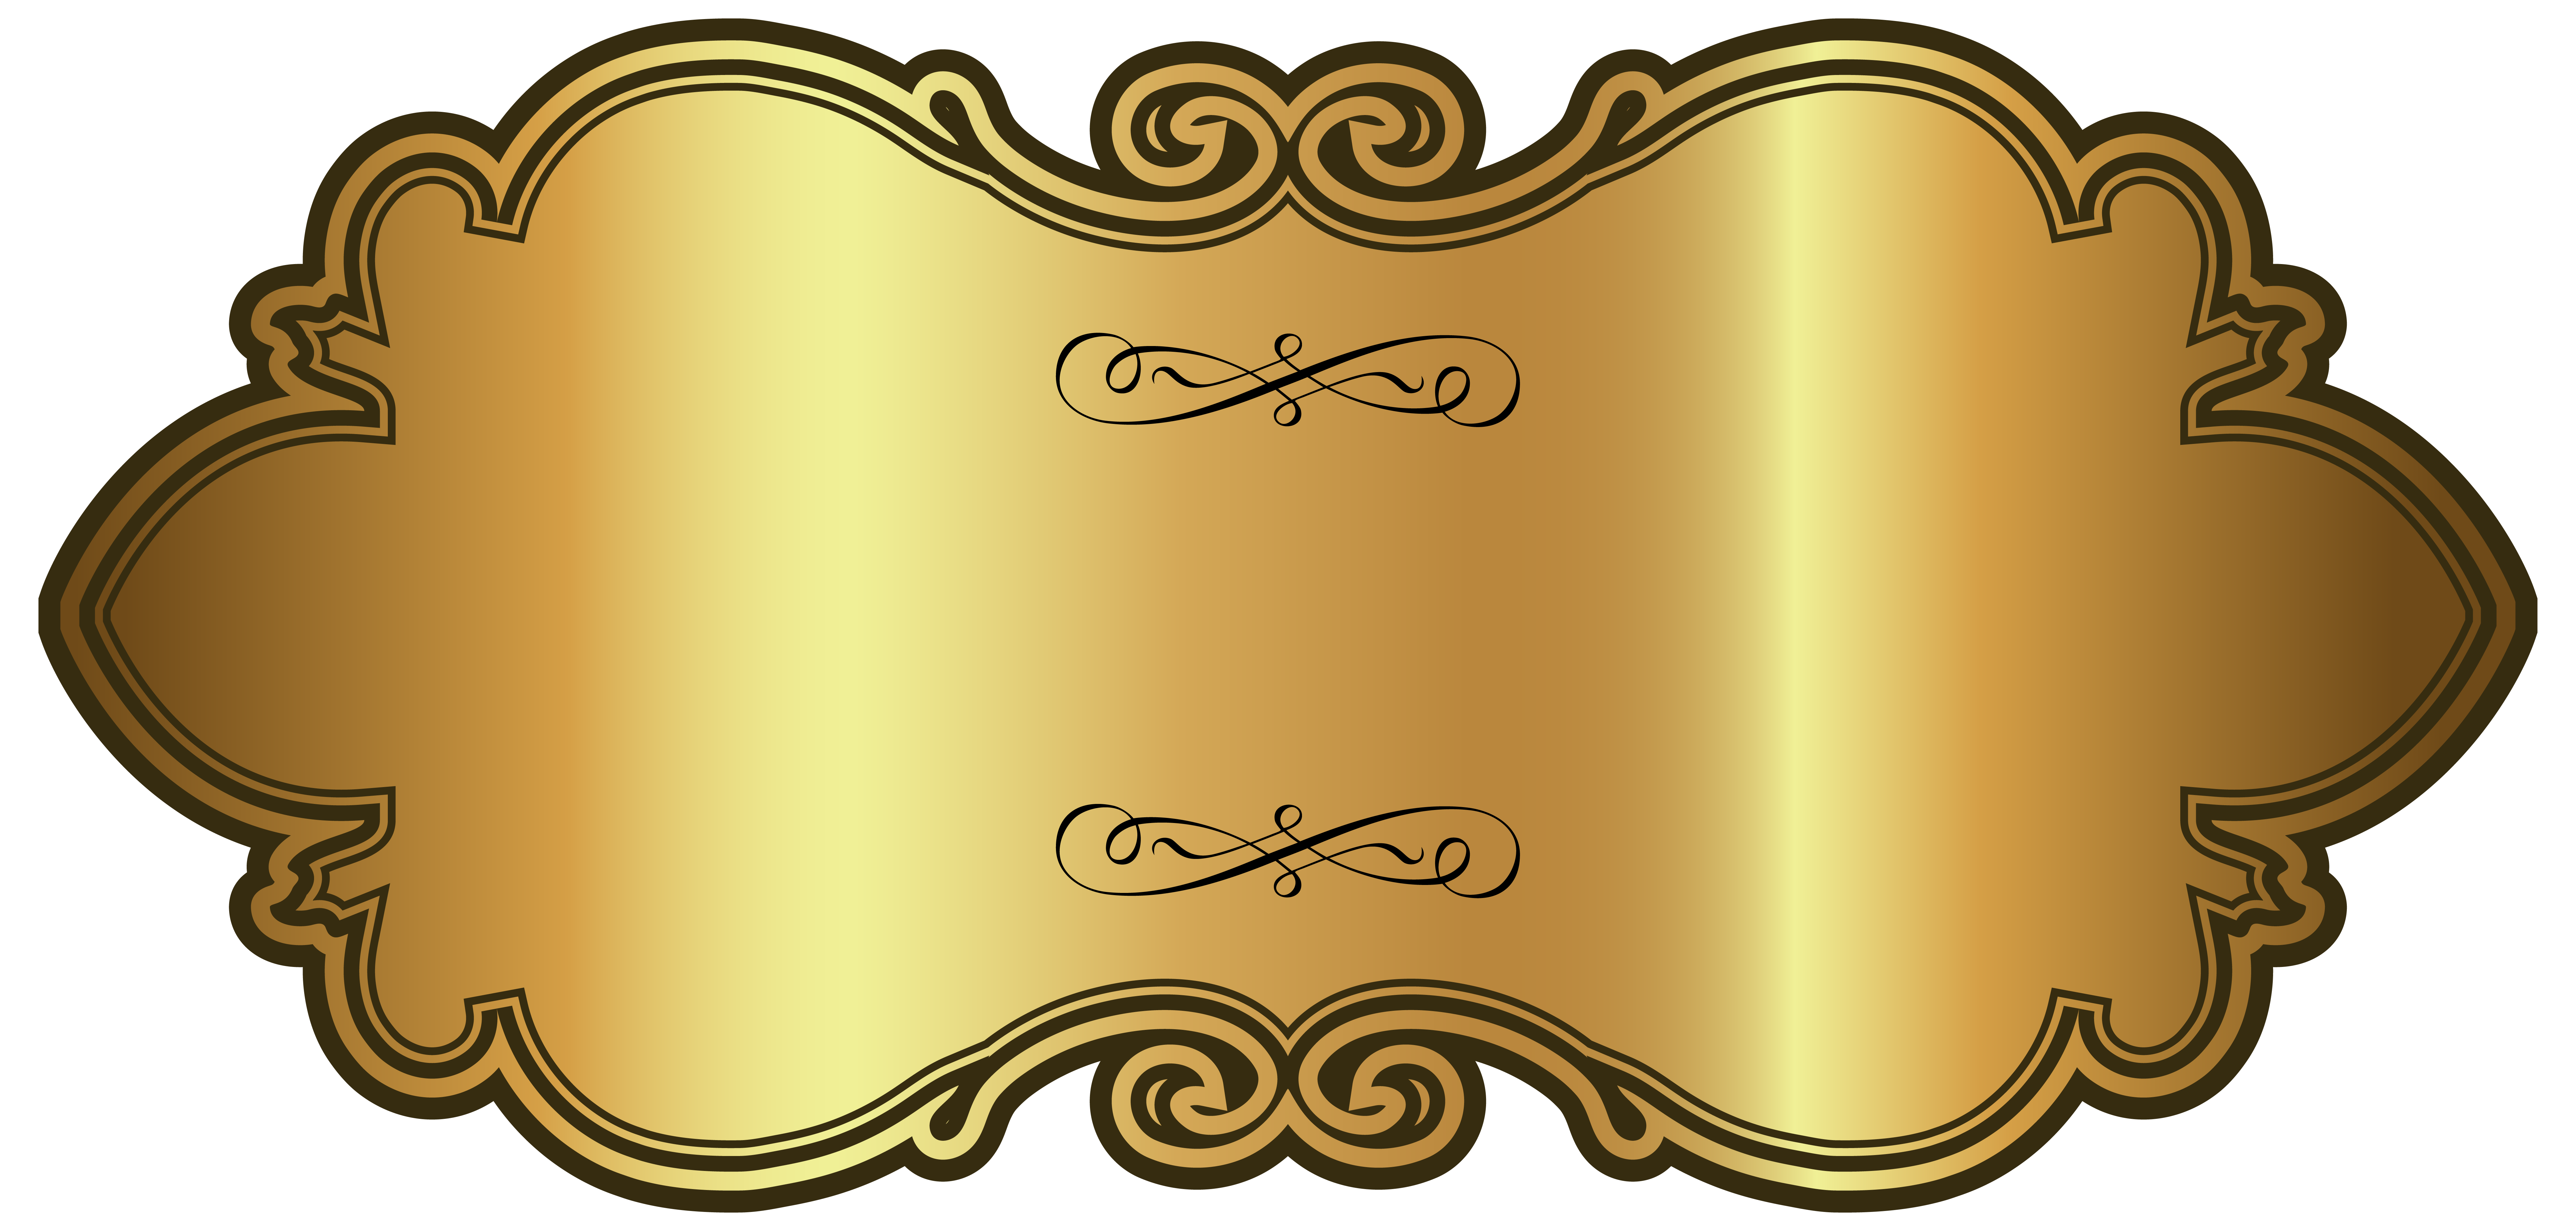 Golden Luxury Label Template PNG Clipart Image | Gallery ...